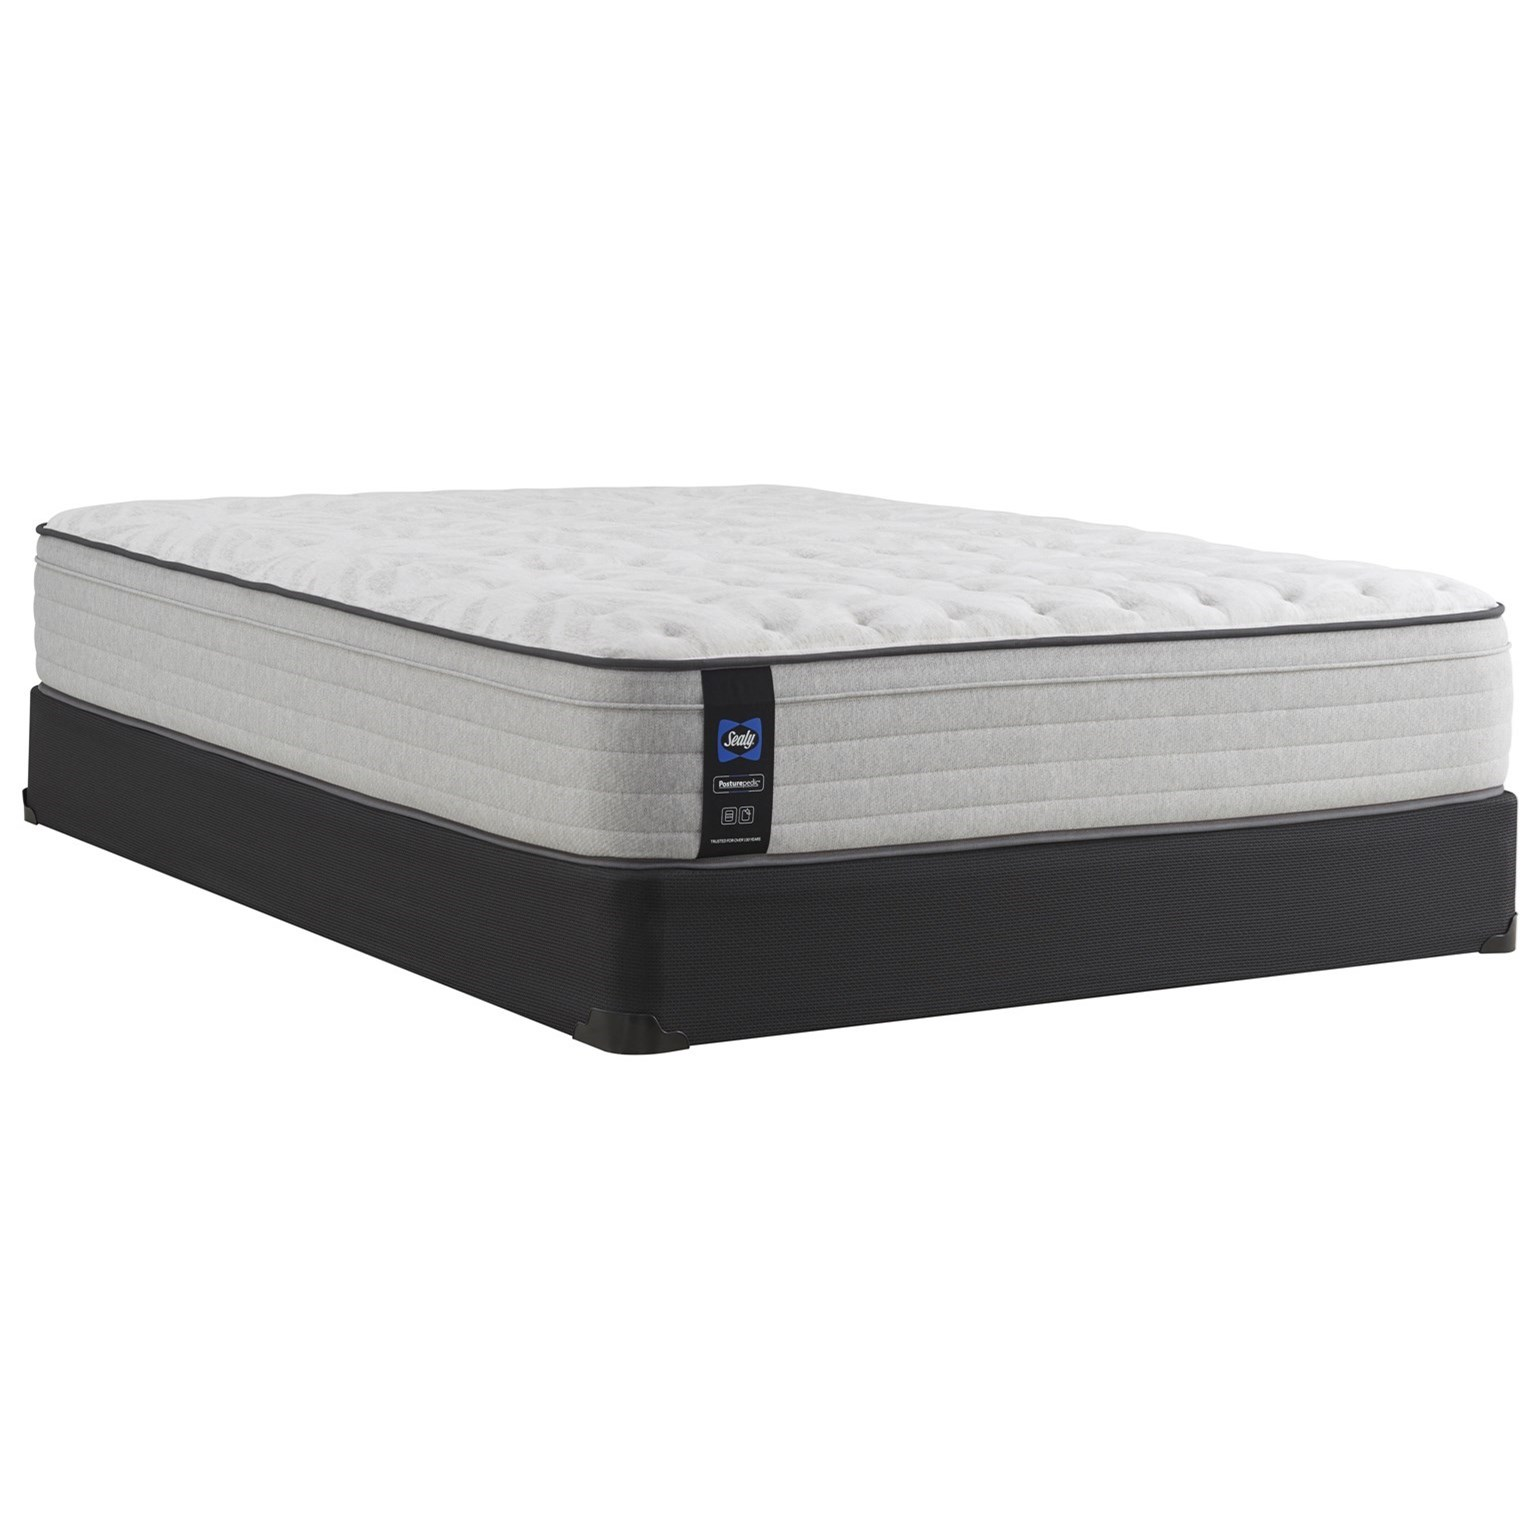 "PPS3 Posturpedic Innerspring Firm FXET Full 13"" Firm FXET Mattress Set by Sealy at Prime Brothers Furniture"